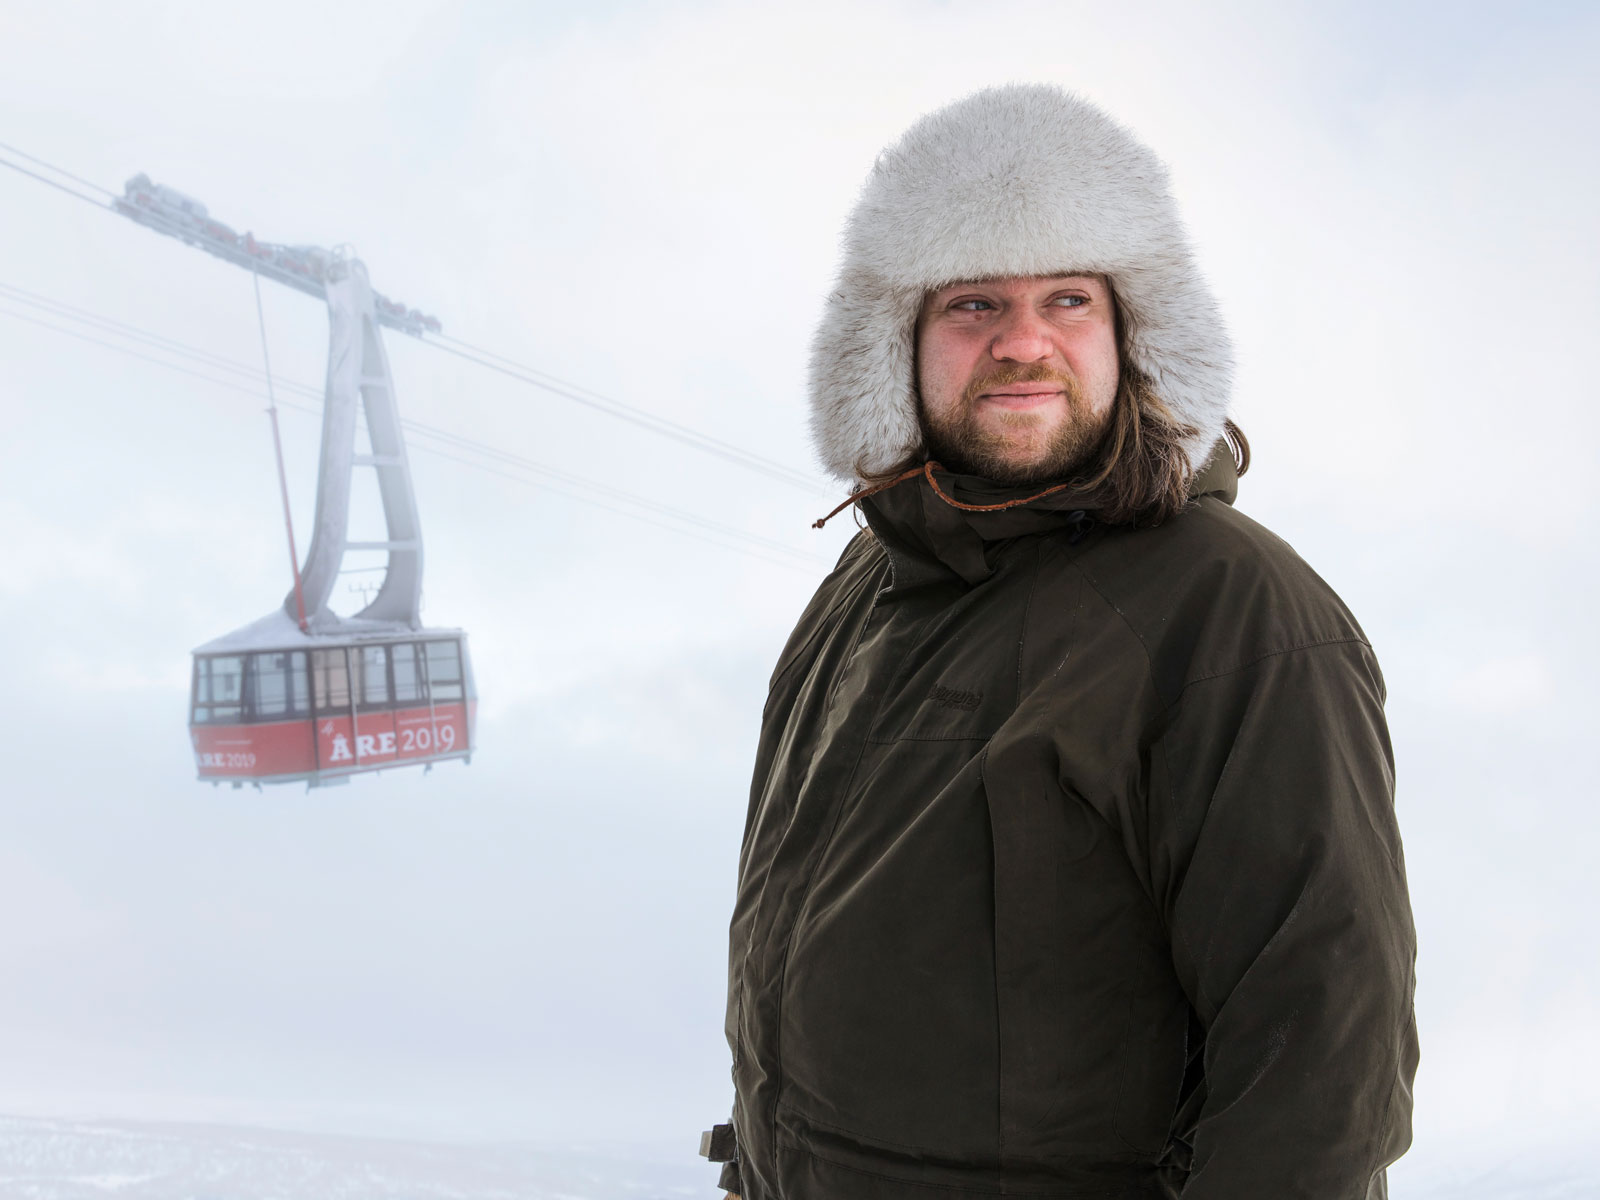 Top Swedish Chef to Serve Easter Dinner in a Gondola 4,000 Feet Above Ground